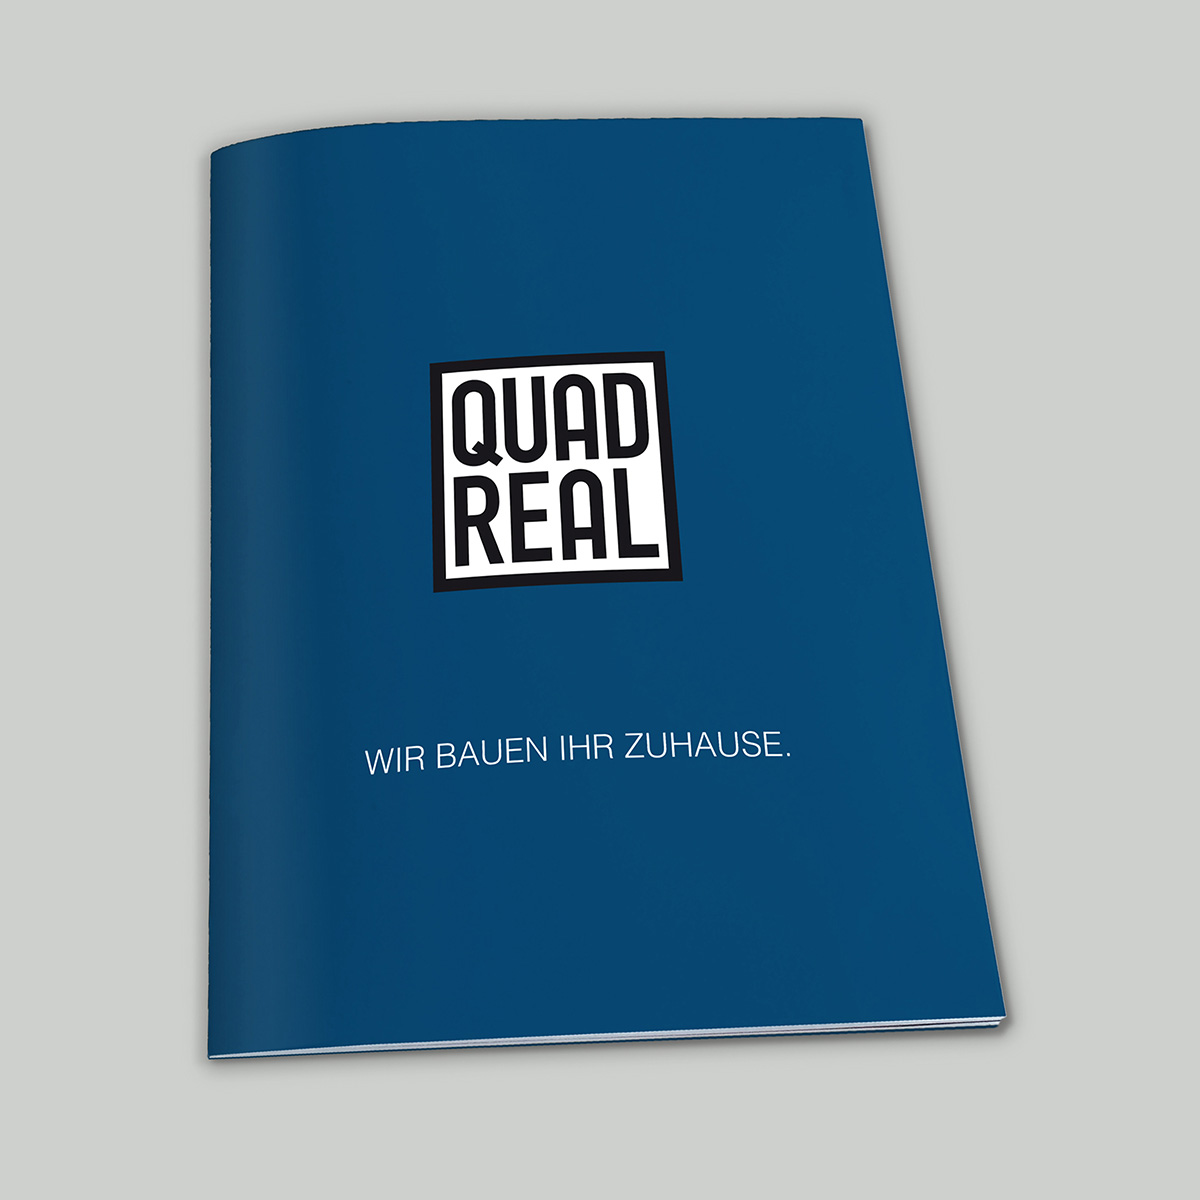 Quadreal_Broschüre_Front_Q_on